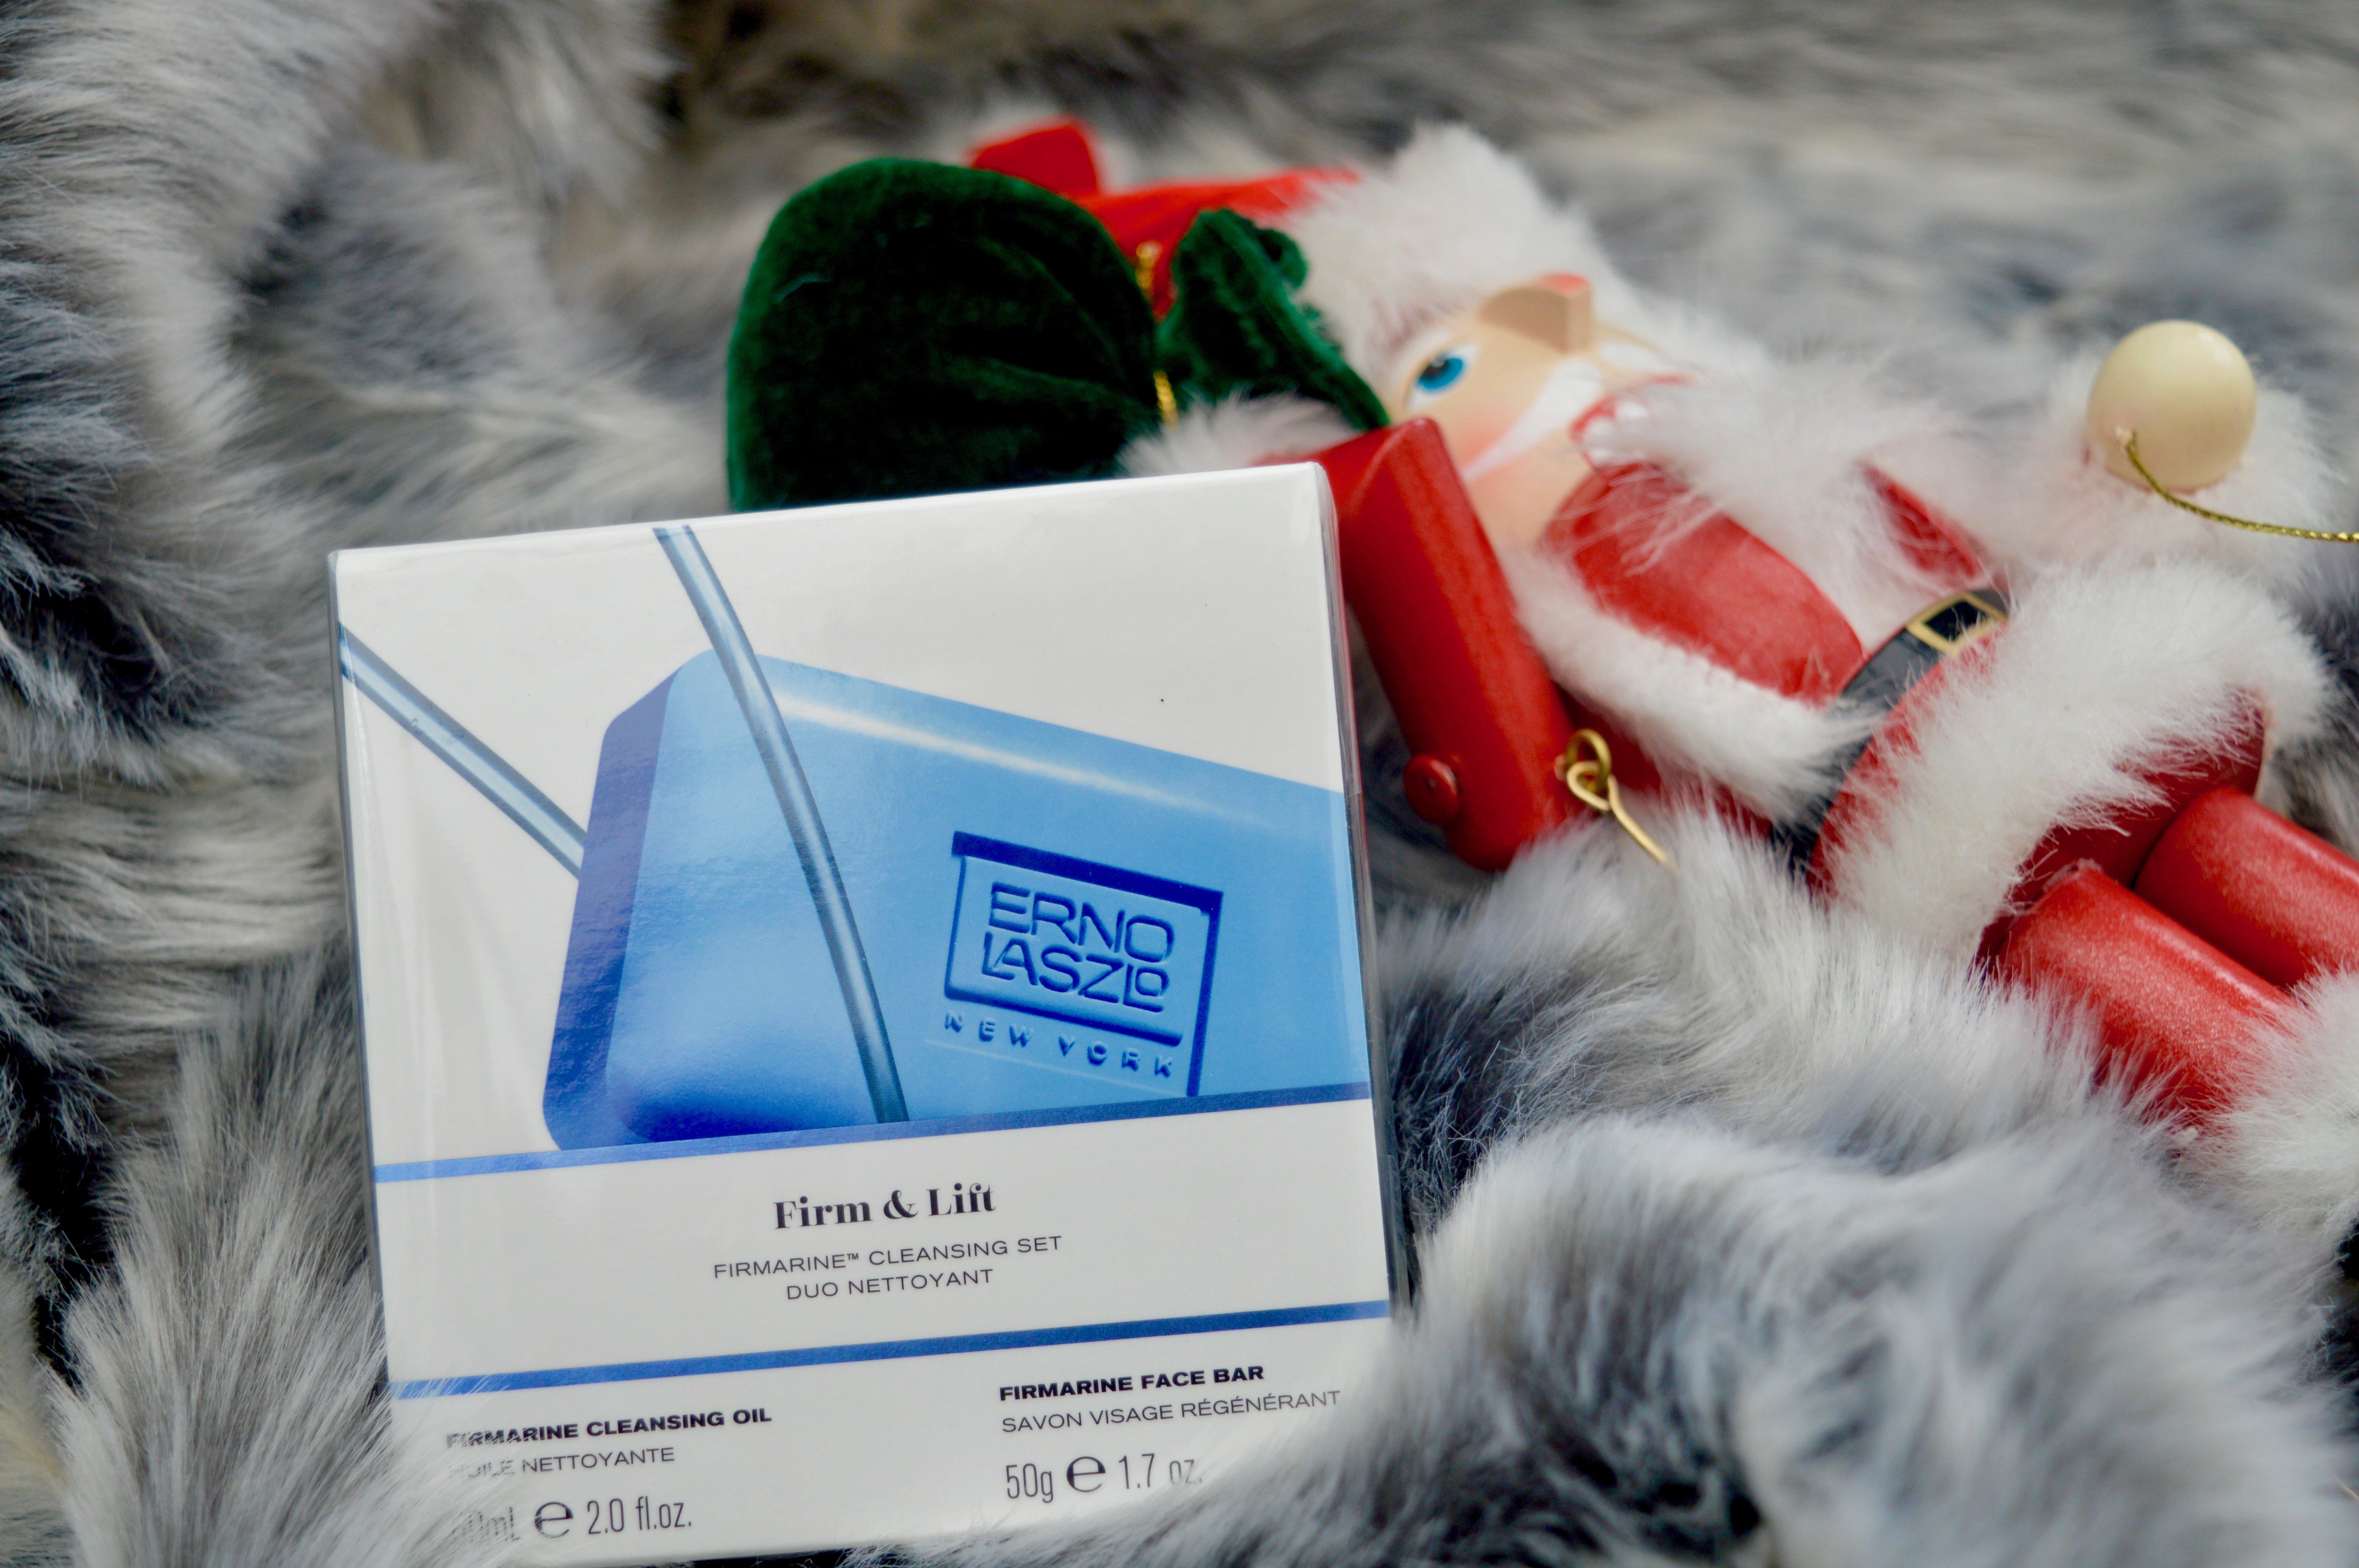 Firmarine Cleansing Set | Erno Laszlo New York | Beauty Regime | Christmas Gift Guide - What to buy your Grandma | Elle Blonde Luxury Lifestyle Destination Blog